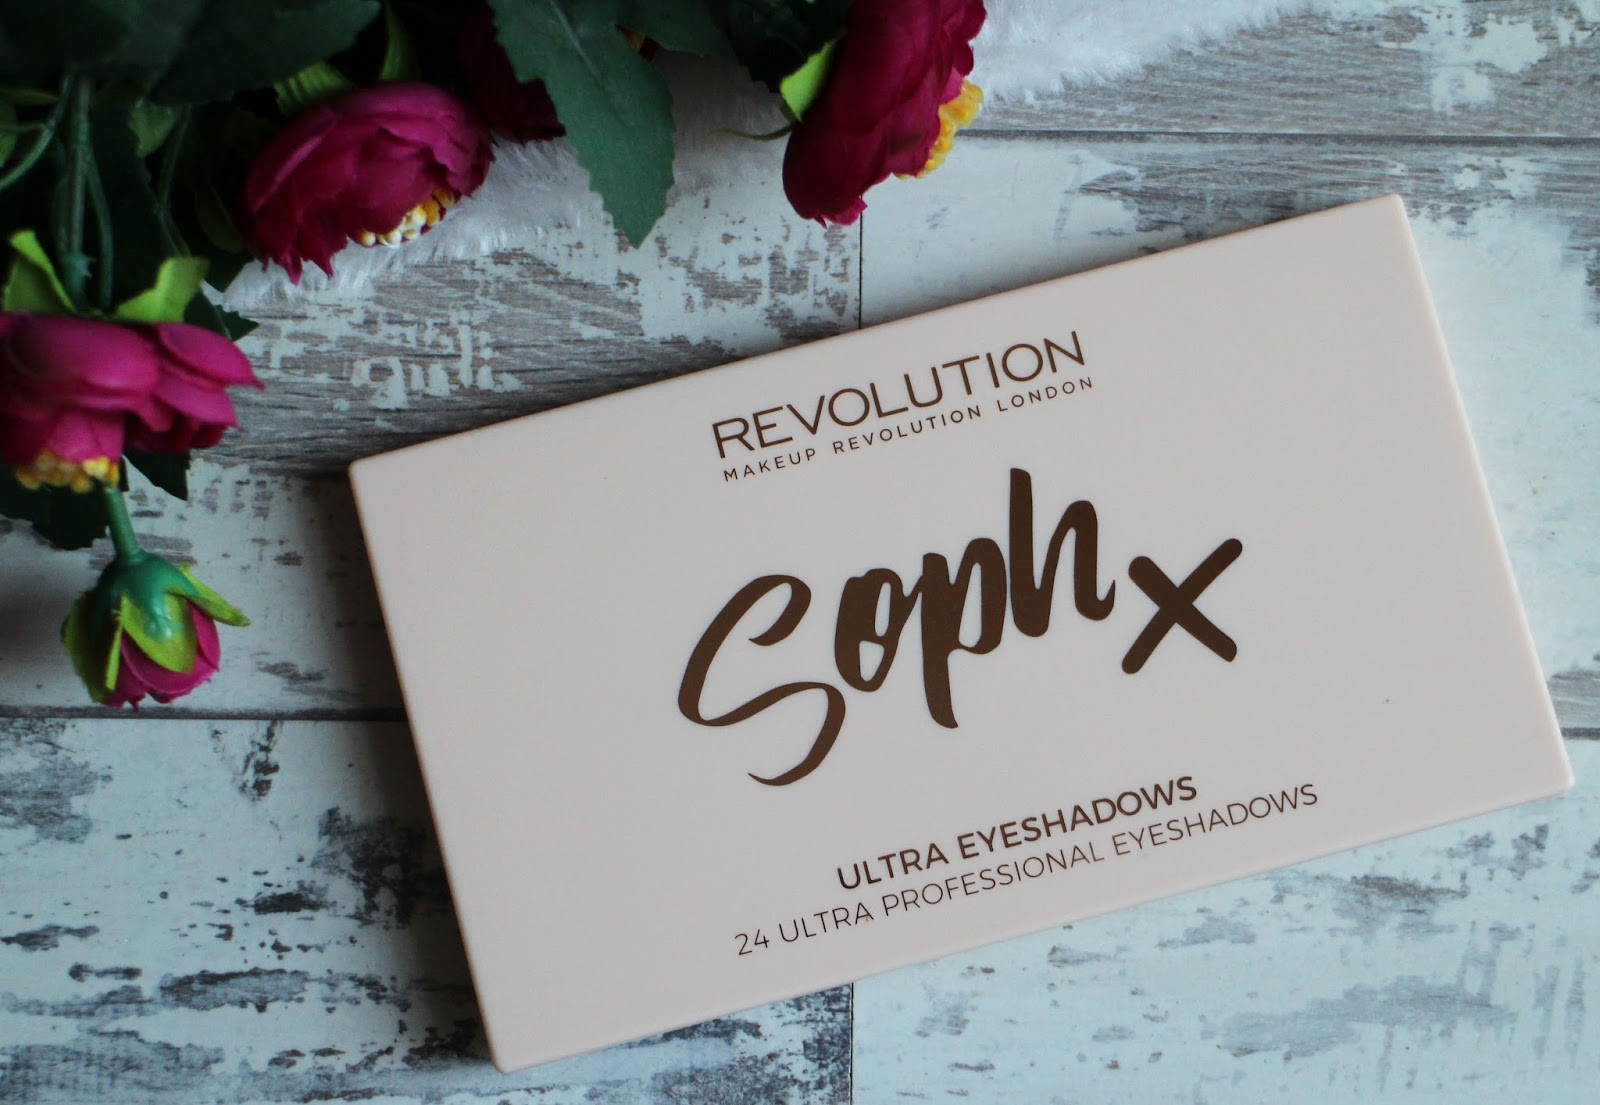 Make Up Revolution Soph X Ultra Eyeshadows Palette